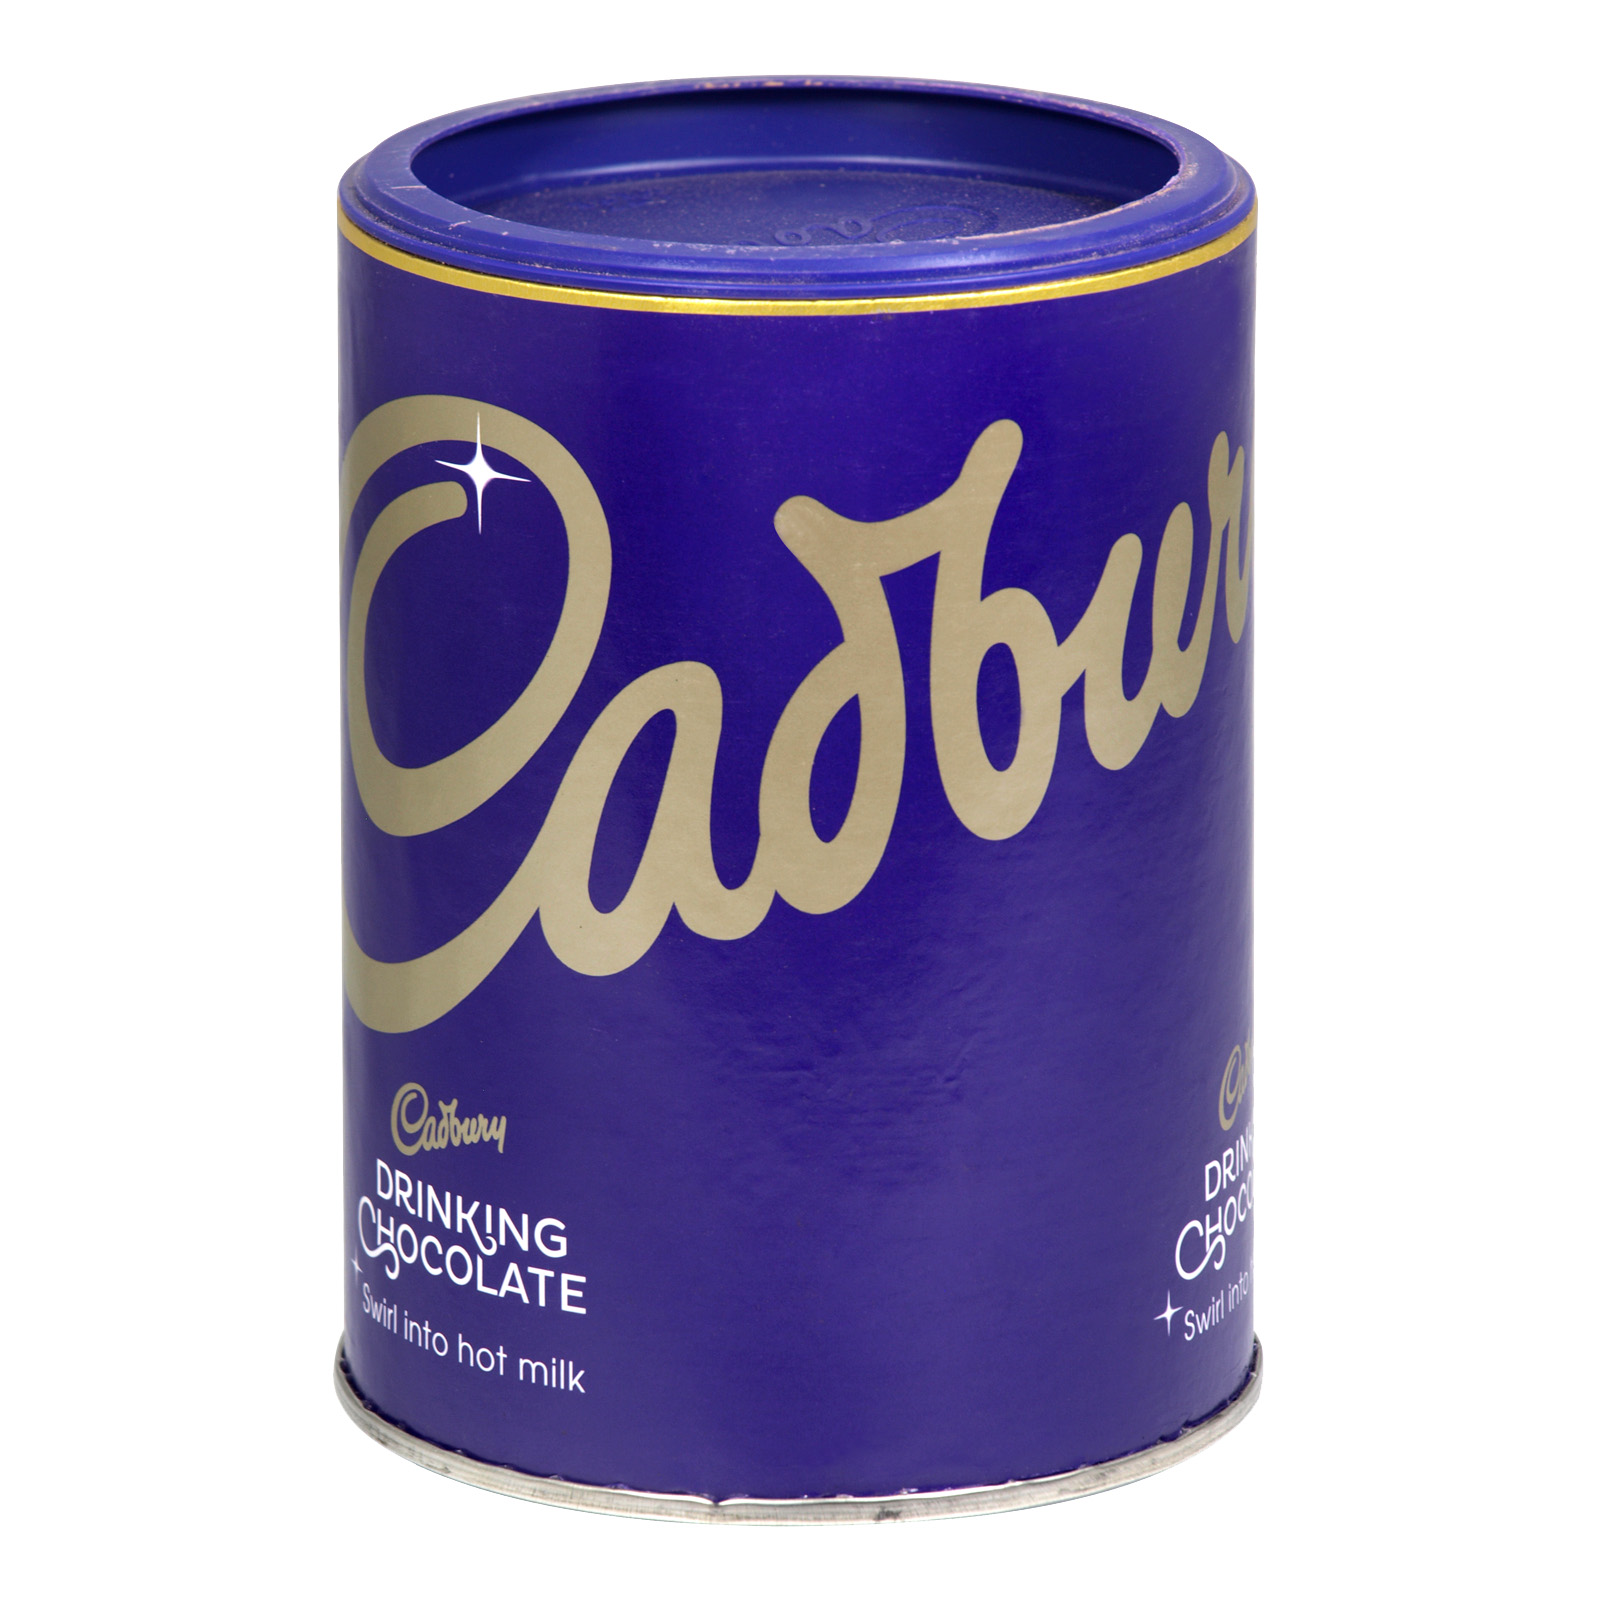 CADBURY DRINKING CHOCOLATE 500GM X6